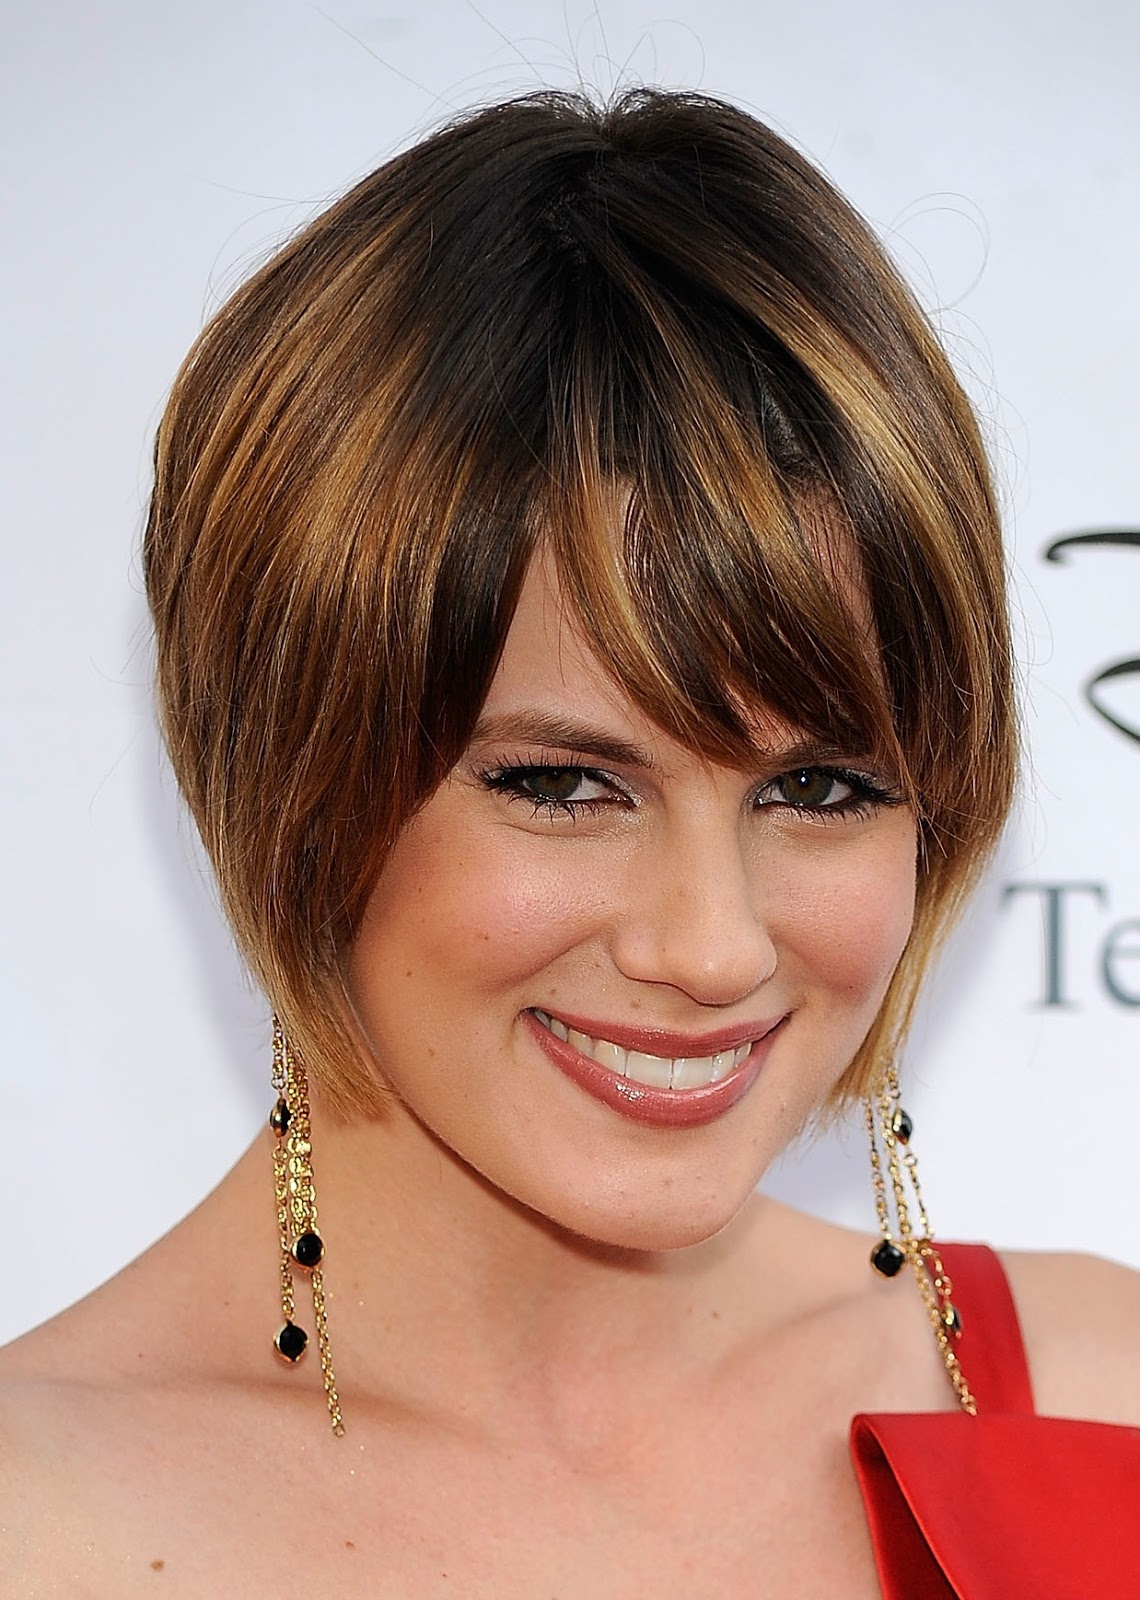 Short Hairstyles for Thick Hair Square Face